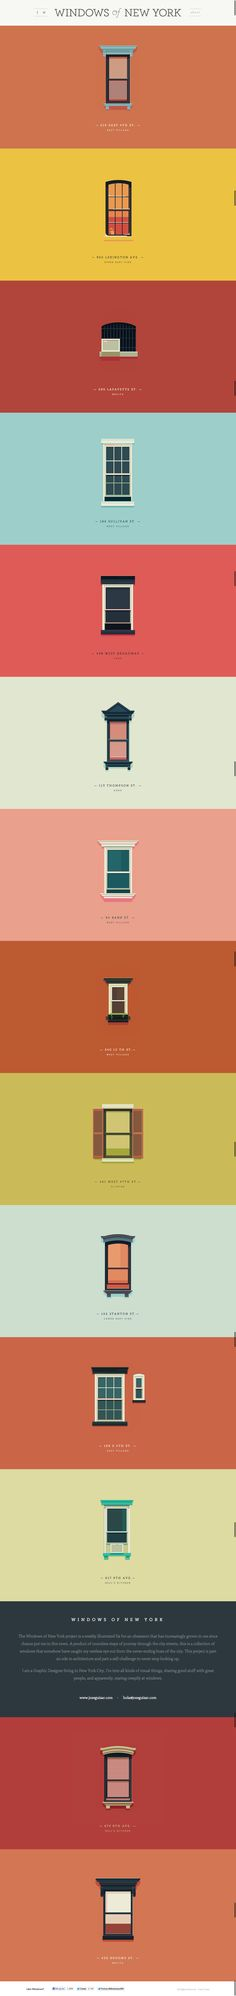 Windows of New York | A weekly illustrated atlas | by Jose Guizar